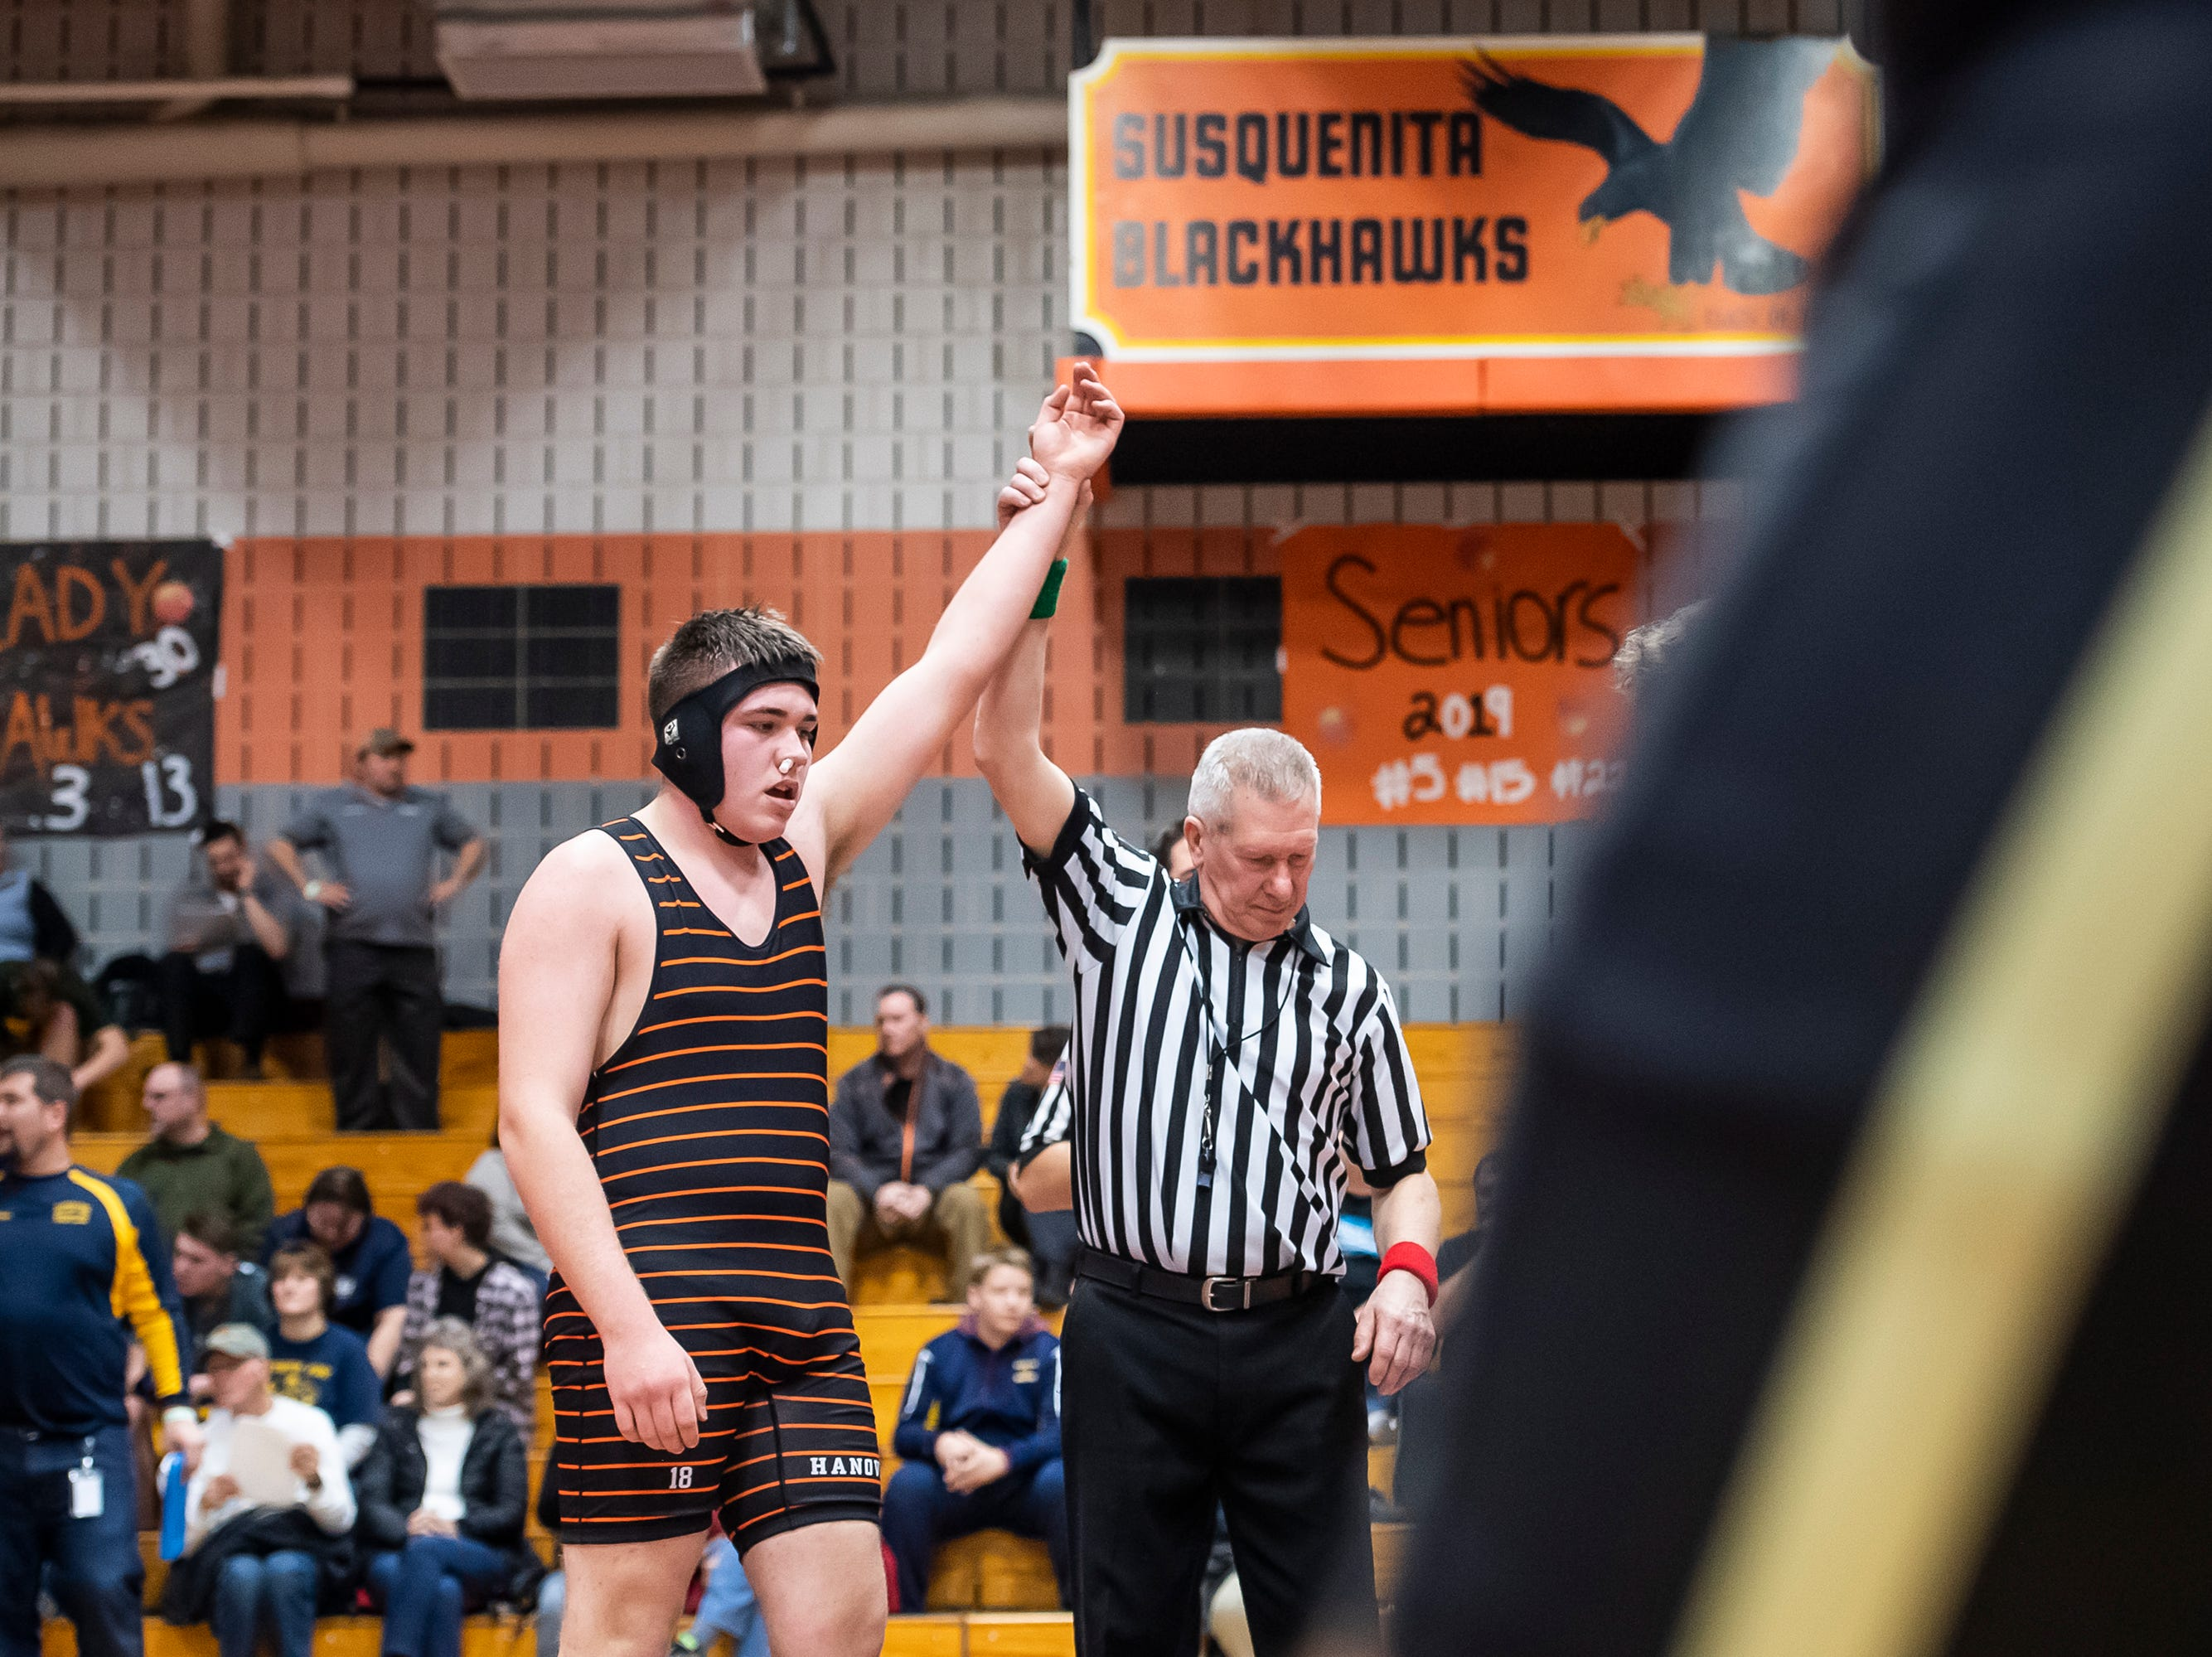 Hanover's Kardan Trish has his arm raised after defeating Bermudian Springs Blaine Worden in a 220-pound bout during the first day of the District 3 Class 2A Section I tournament at Susquenita High School Friday, February 15, 2019. Trish won 3-1.